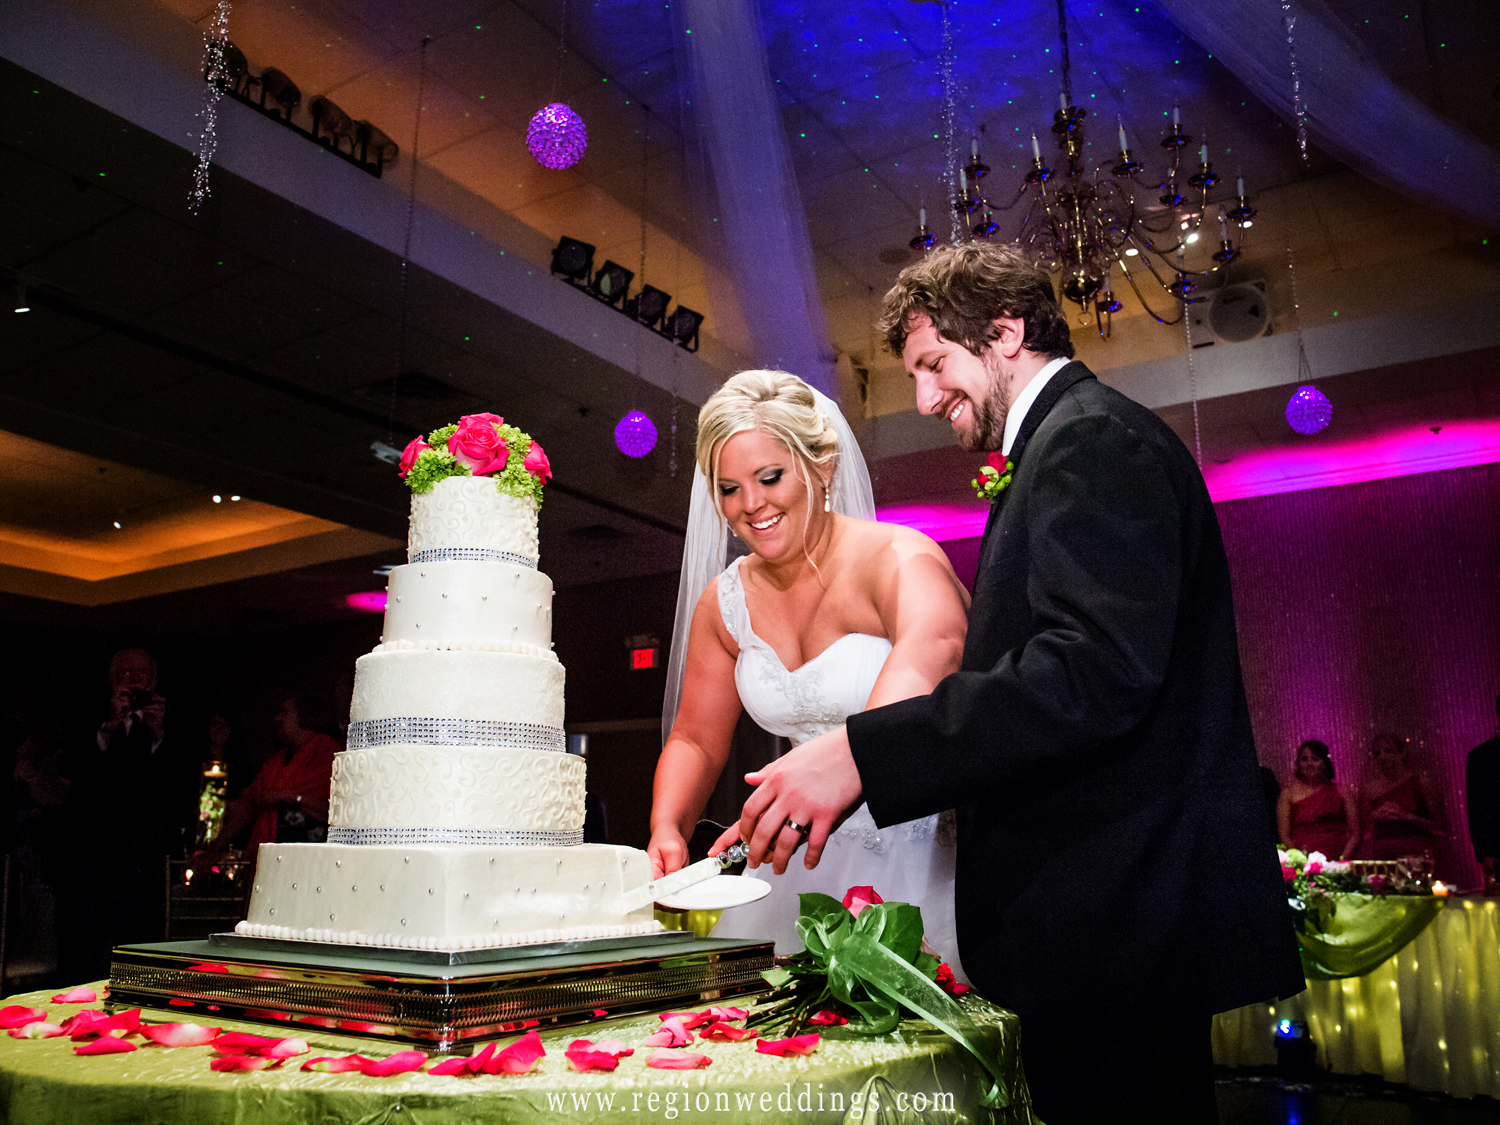 The bride and groom cut their cake at Aberdeen Manor in Valparaiso with stunning uplighting in the background.